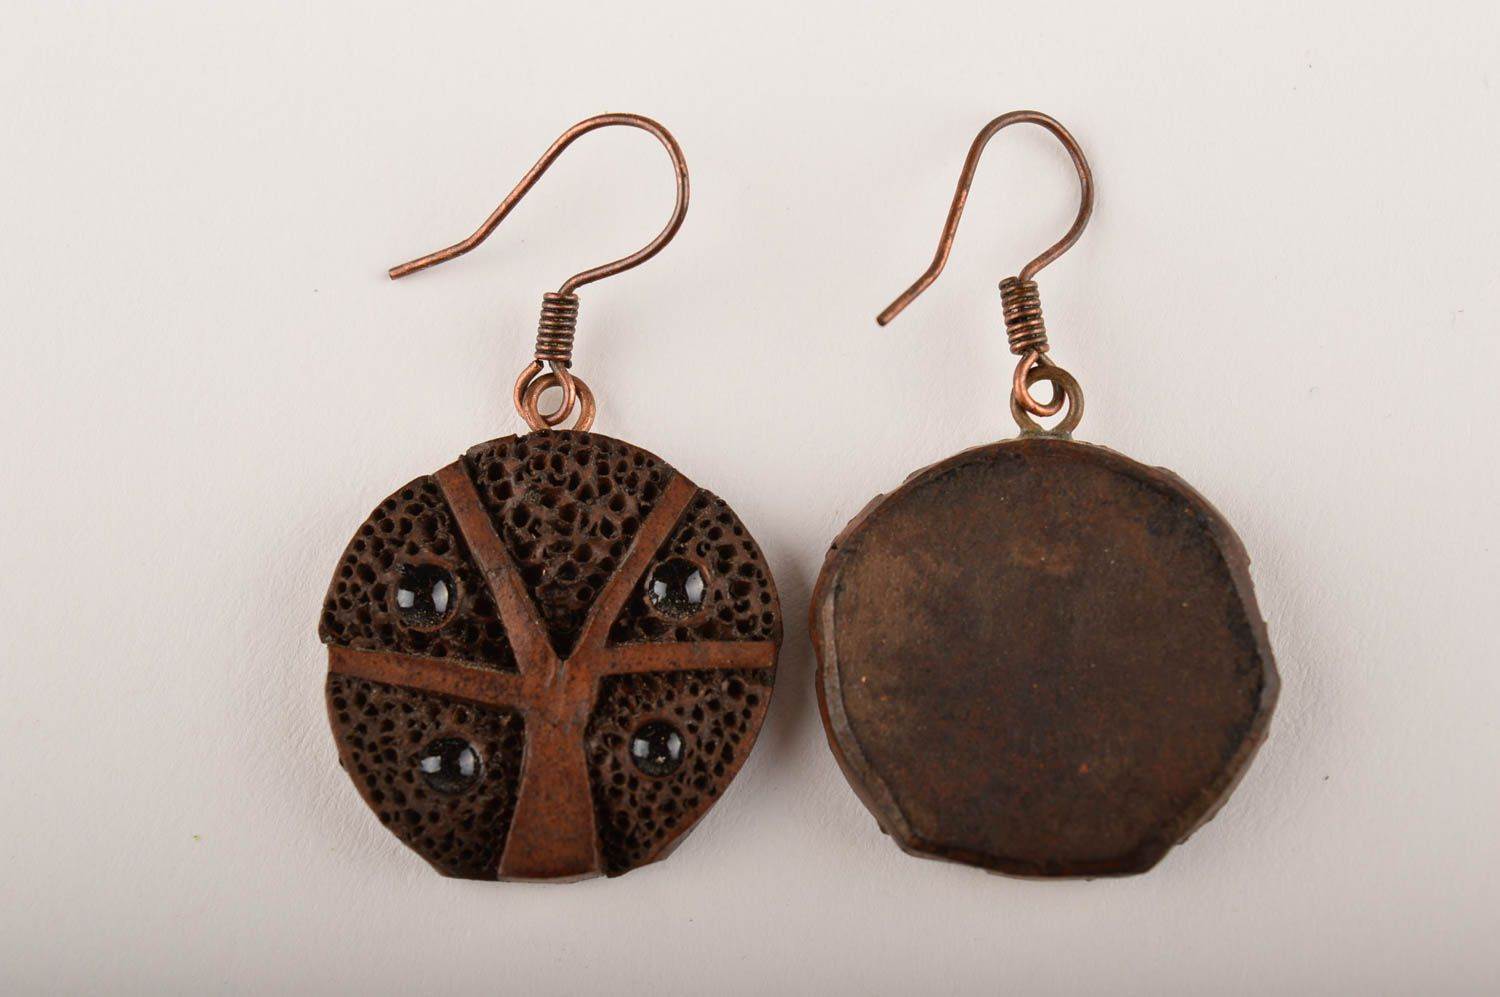 Ceramic jewelry handmade earrings gifts for women fashion accessories photo 3